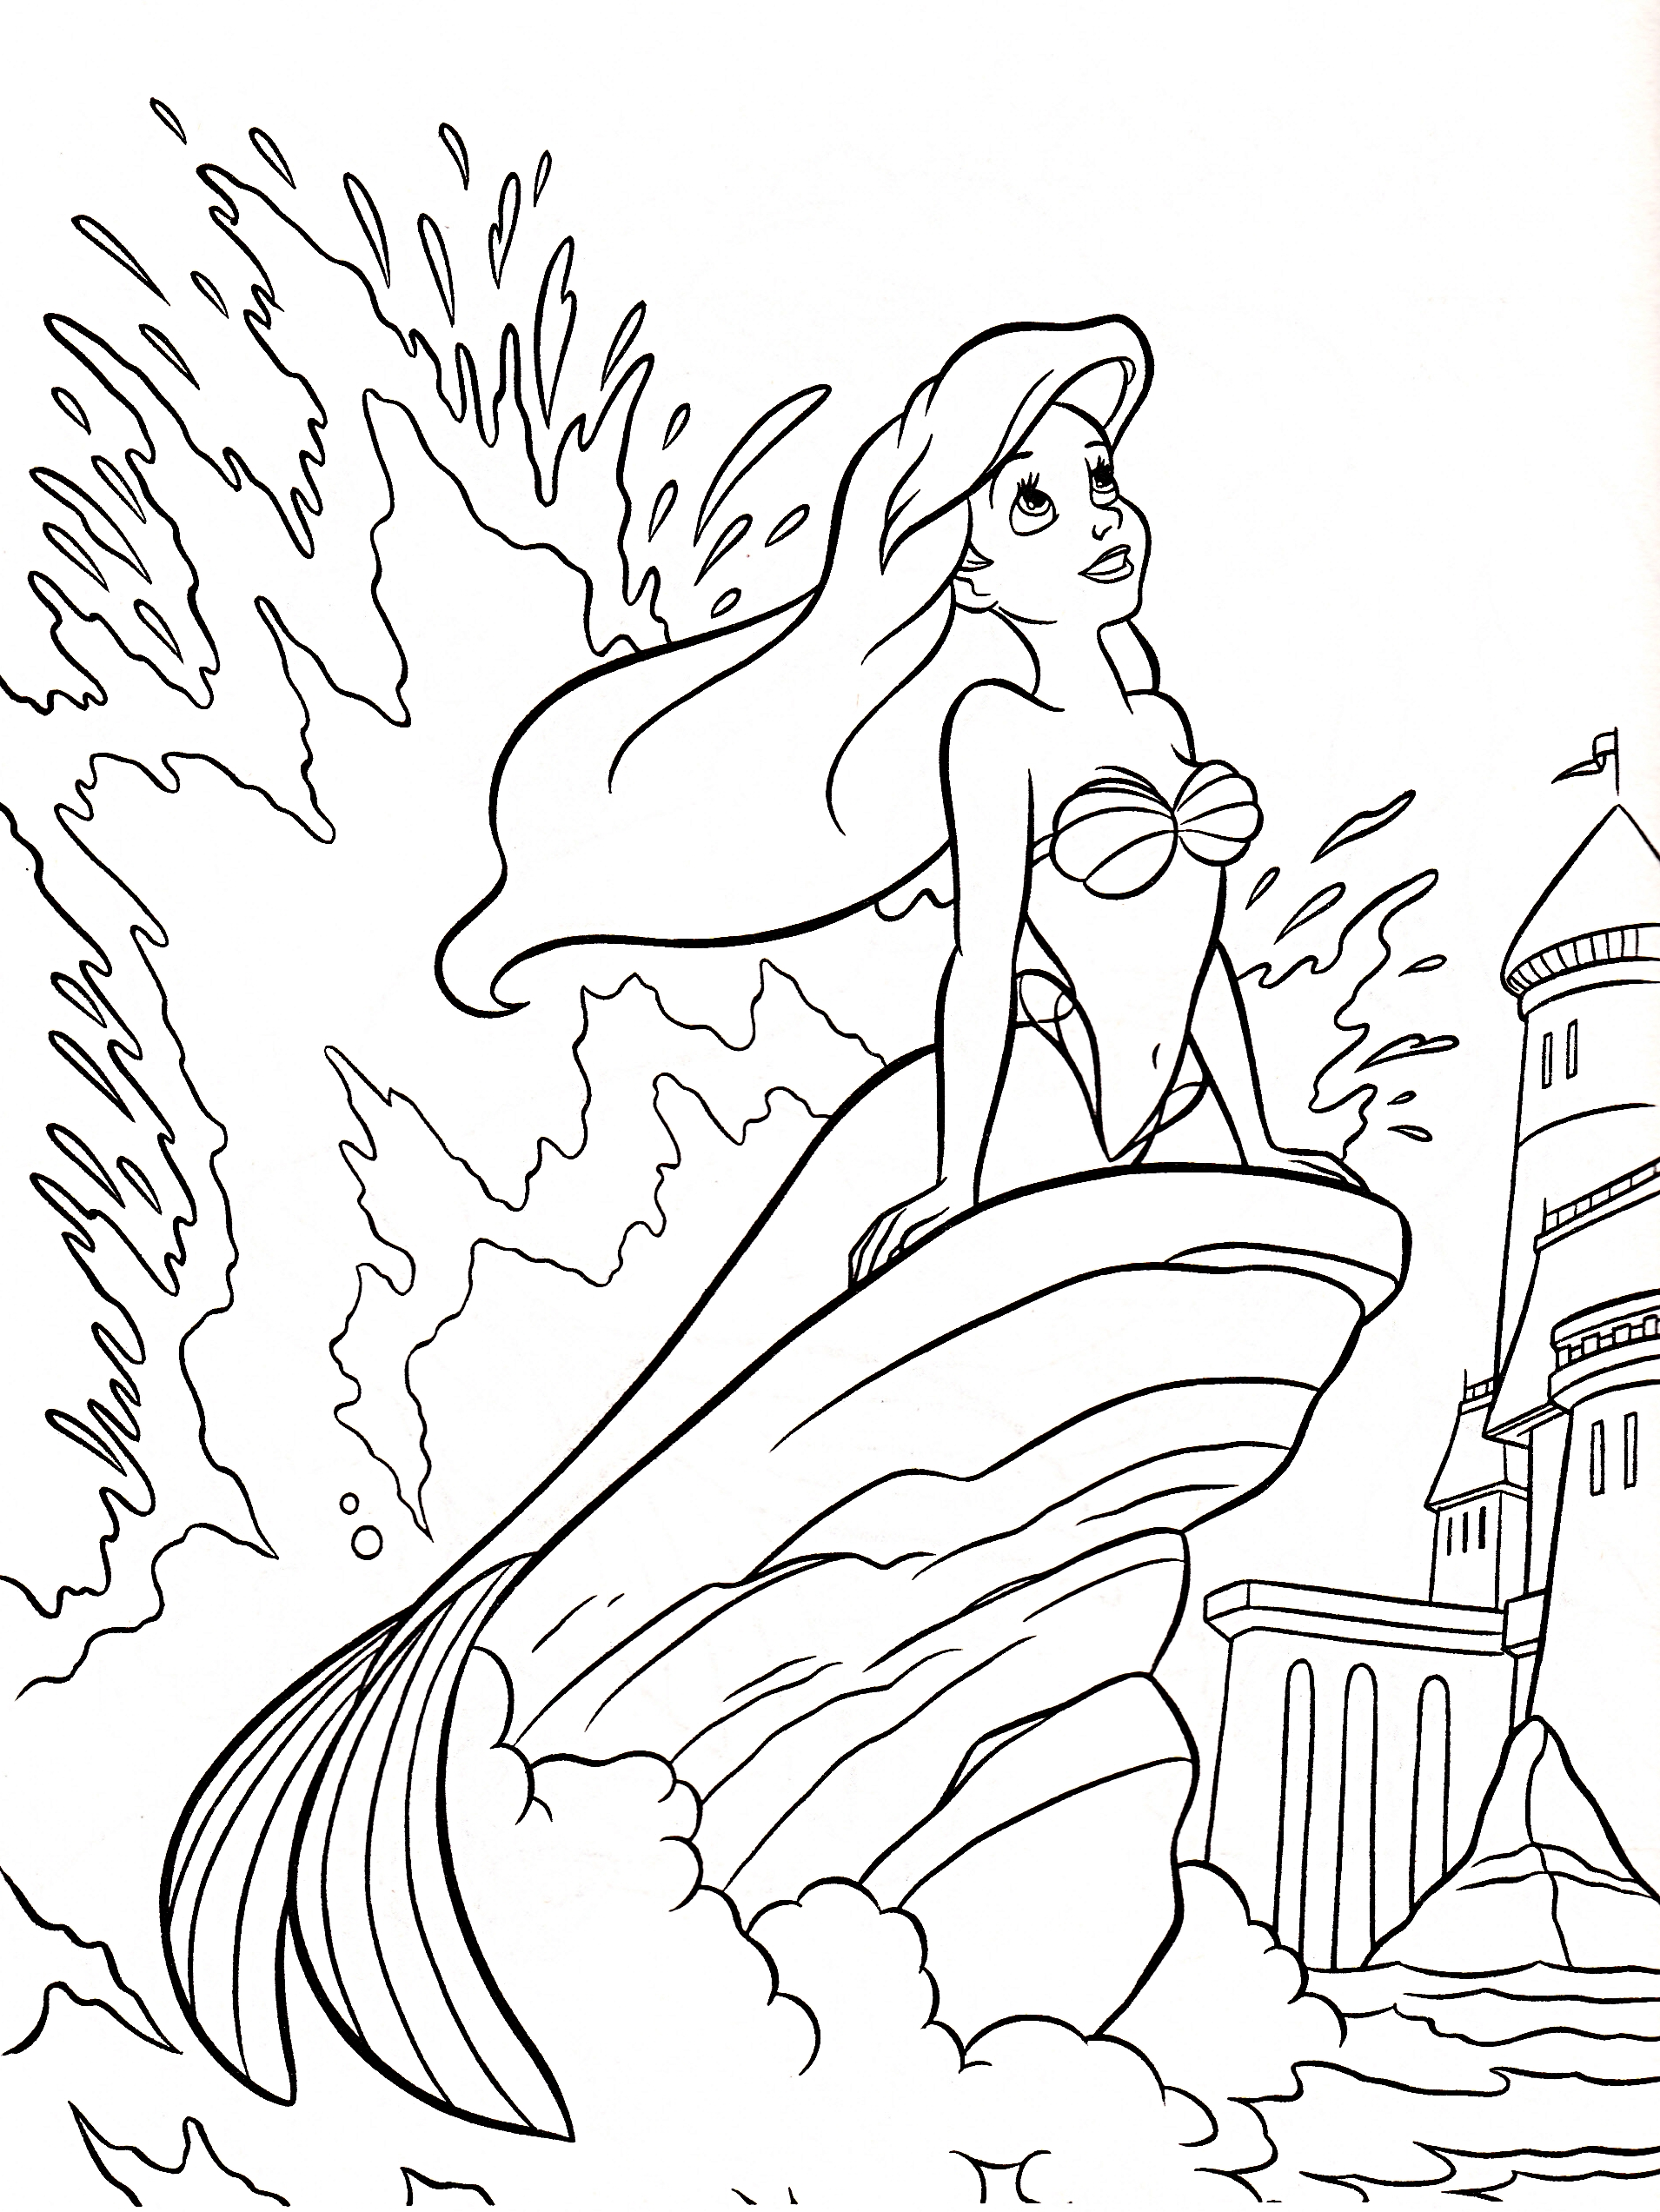 Walt Disney Coloring Pages Princess Ariel Walt Disney The Coloring Pages